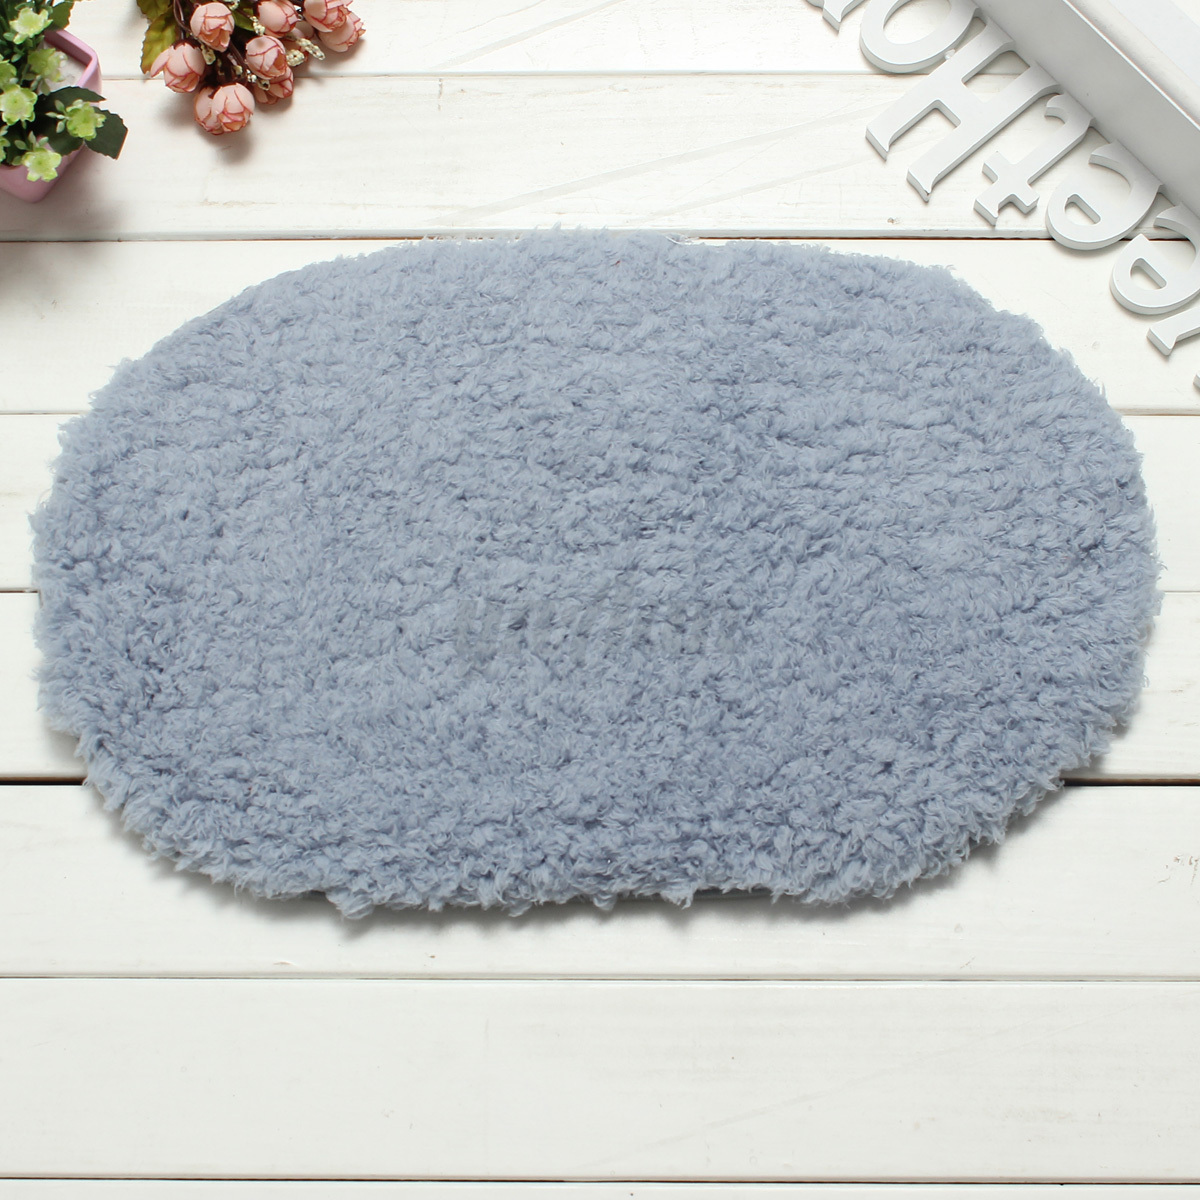 tapis de bain paillasson shaggy entr e sol carpette antid rapant douche salon ebay. Black Bedroom Furniture Sets. Home Design Ideas